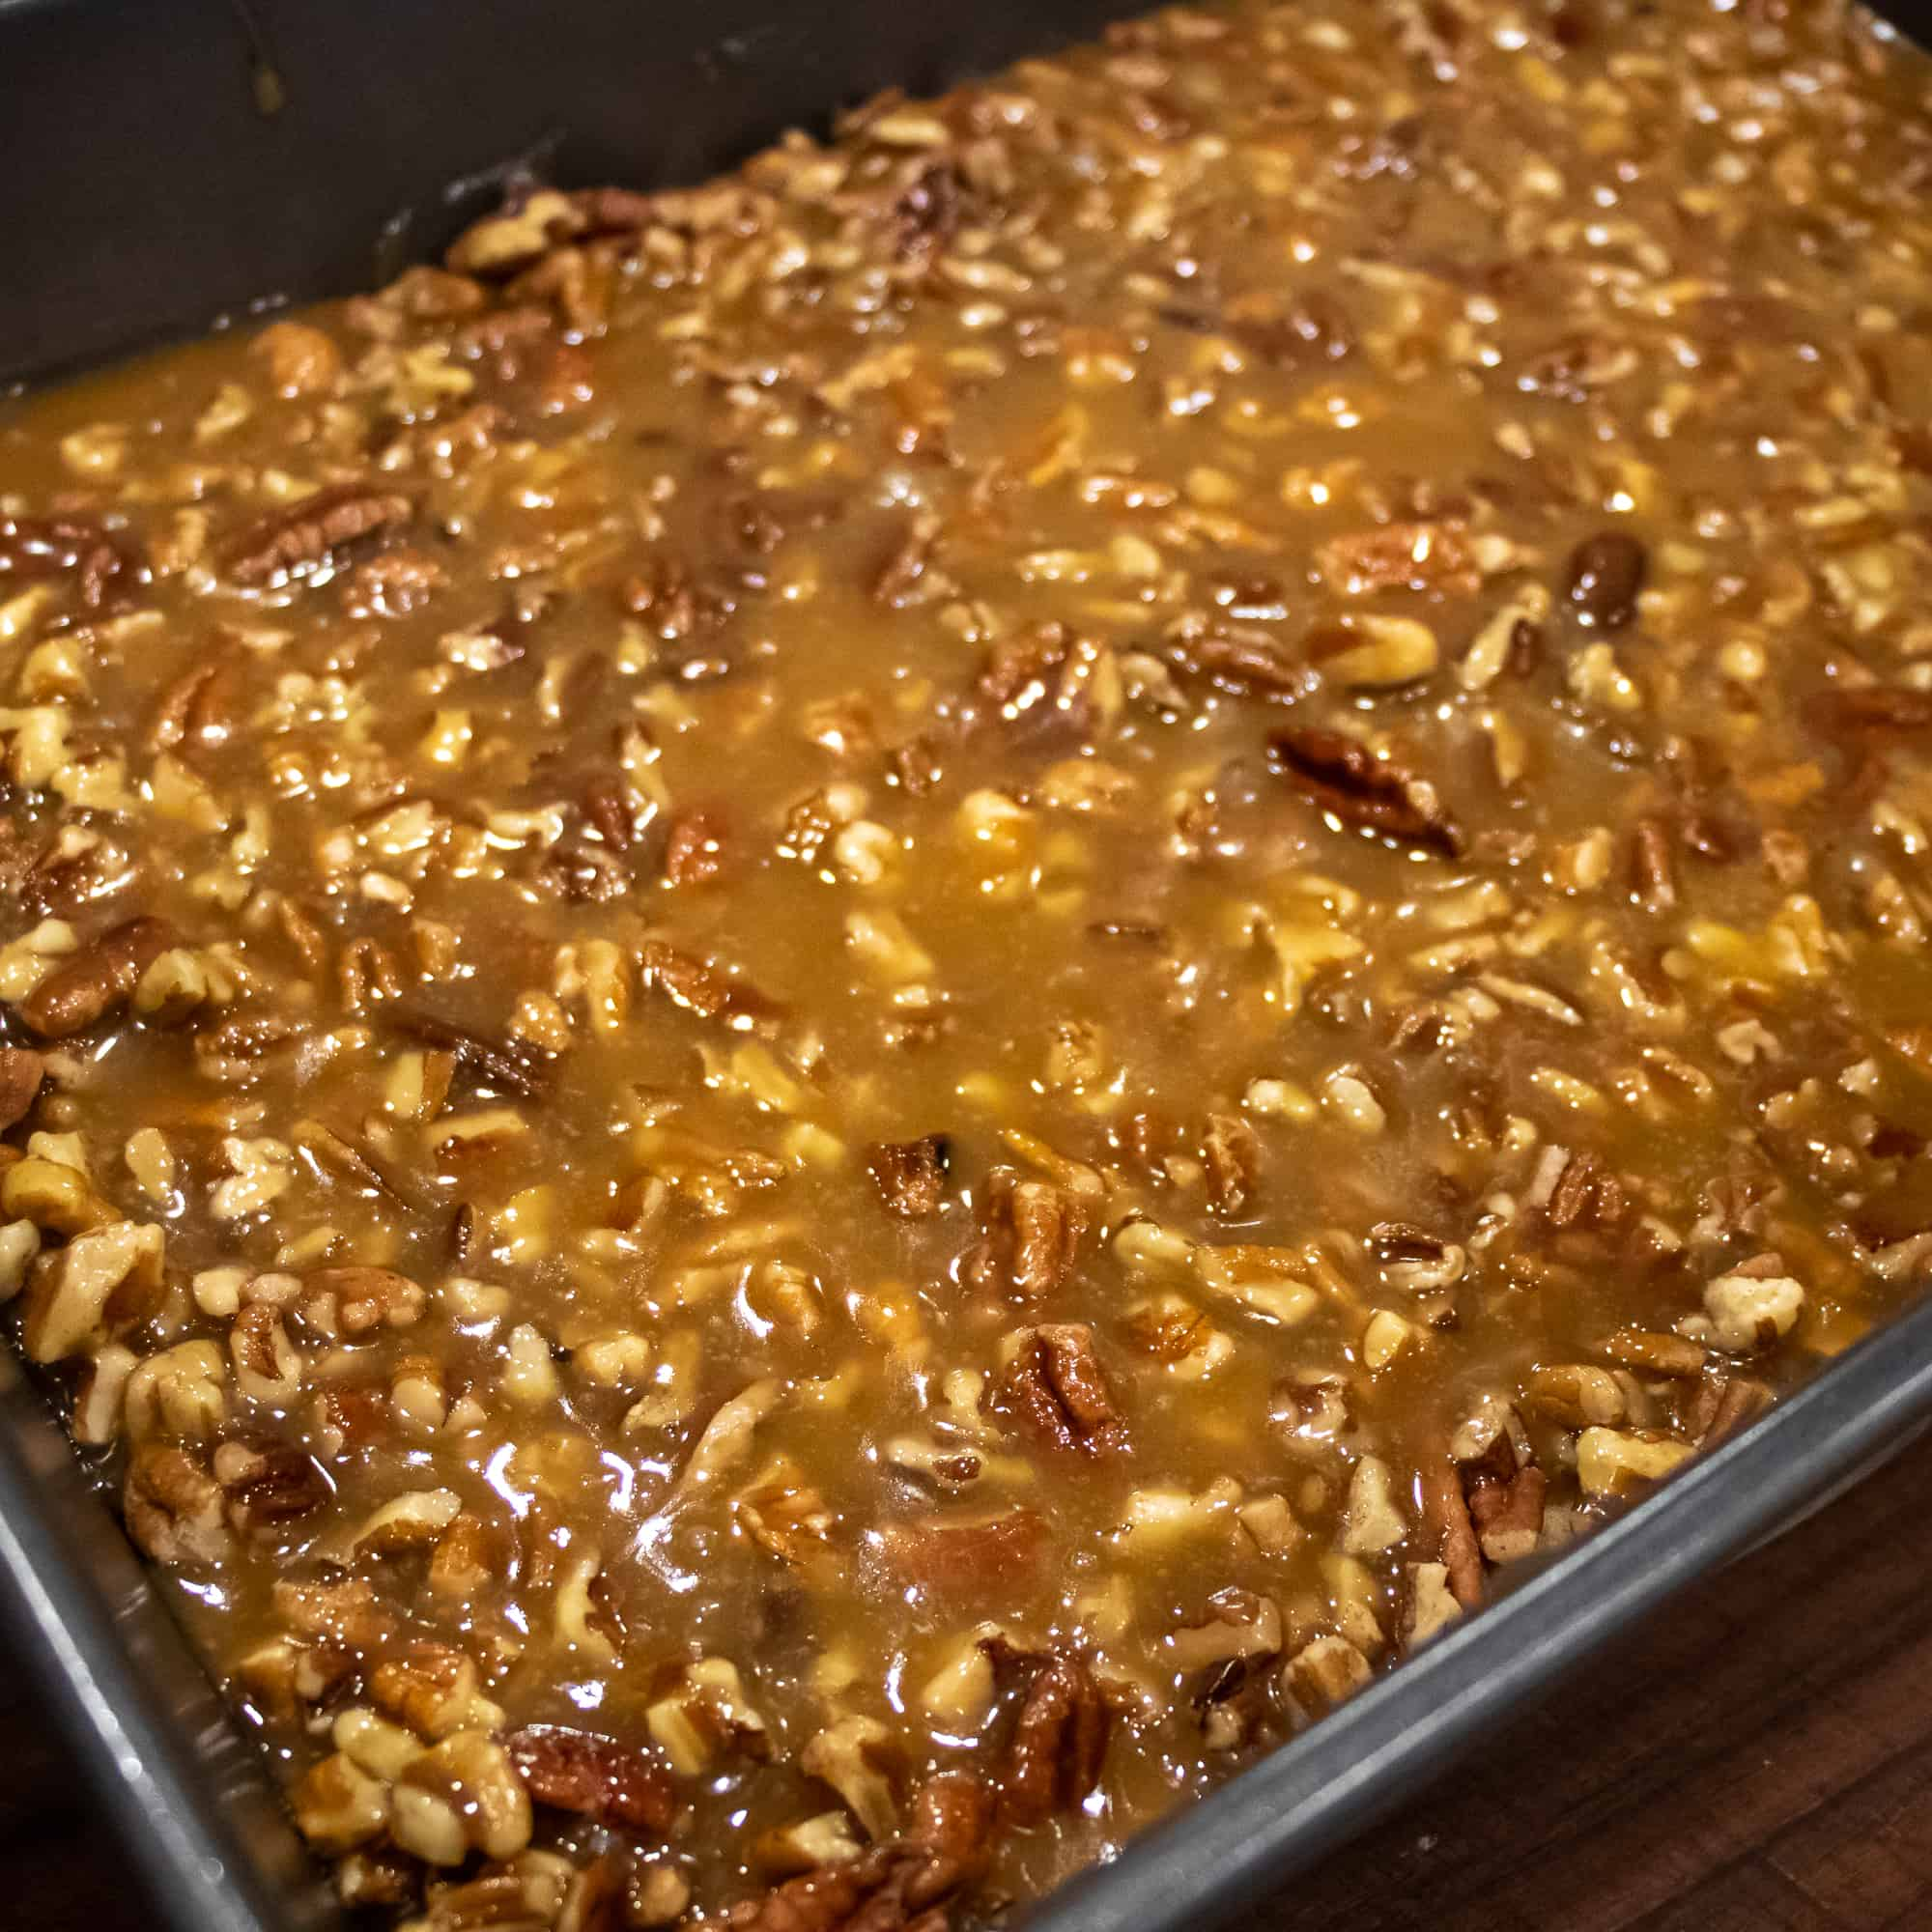 Pour the caramel and pecans over the crust layer.